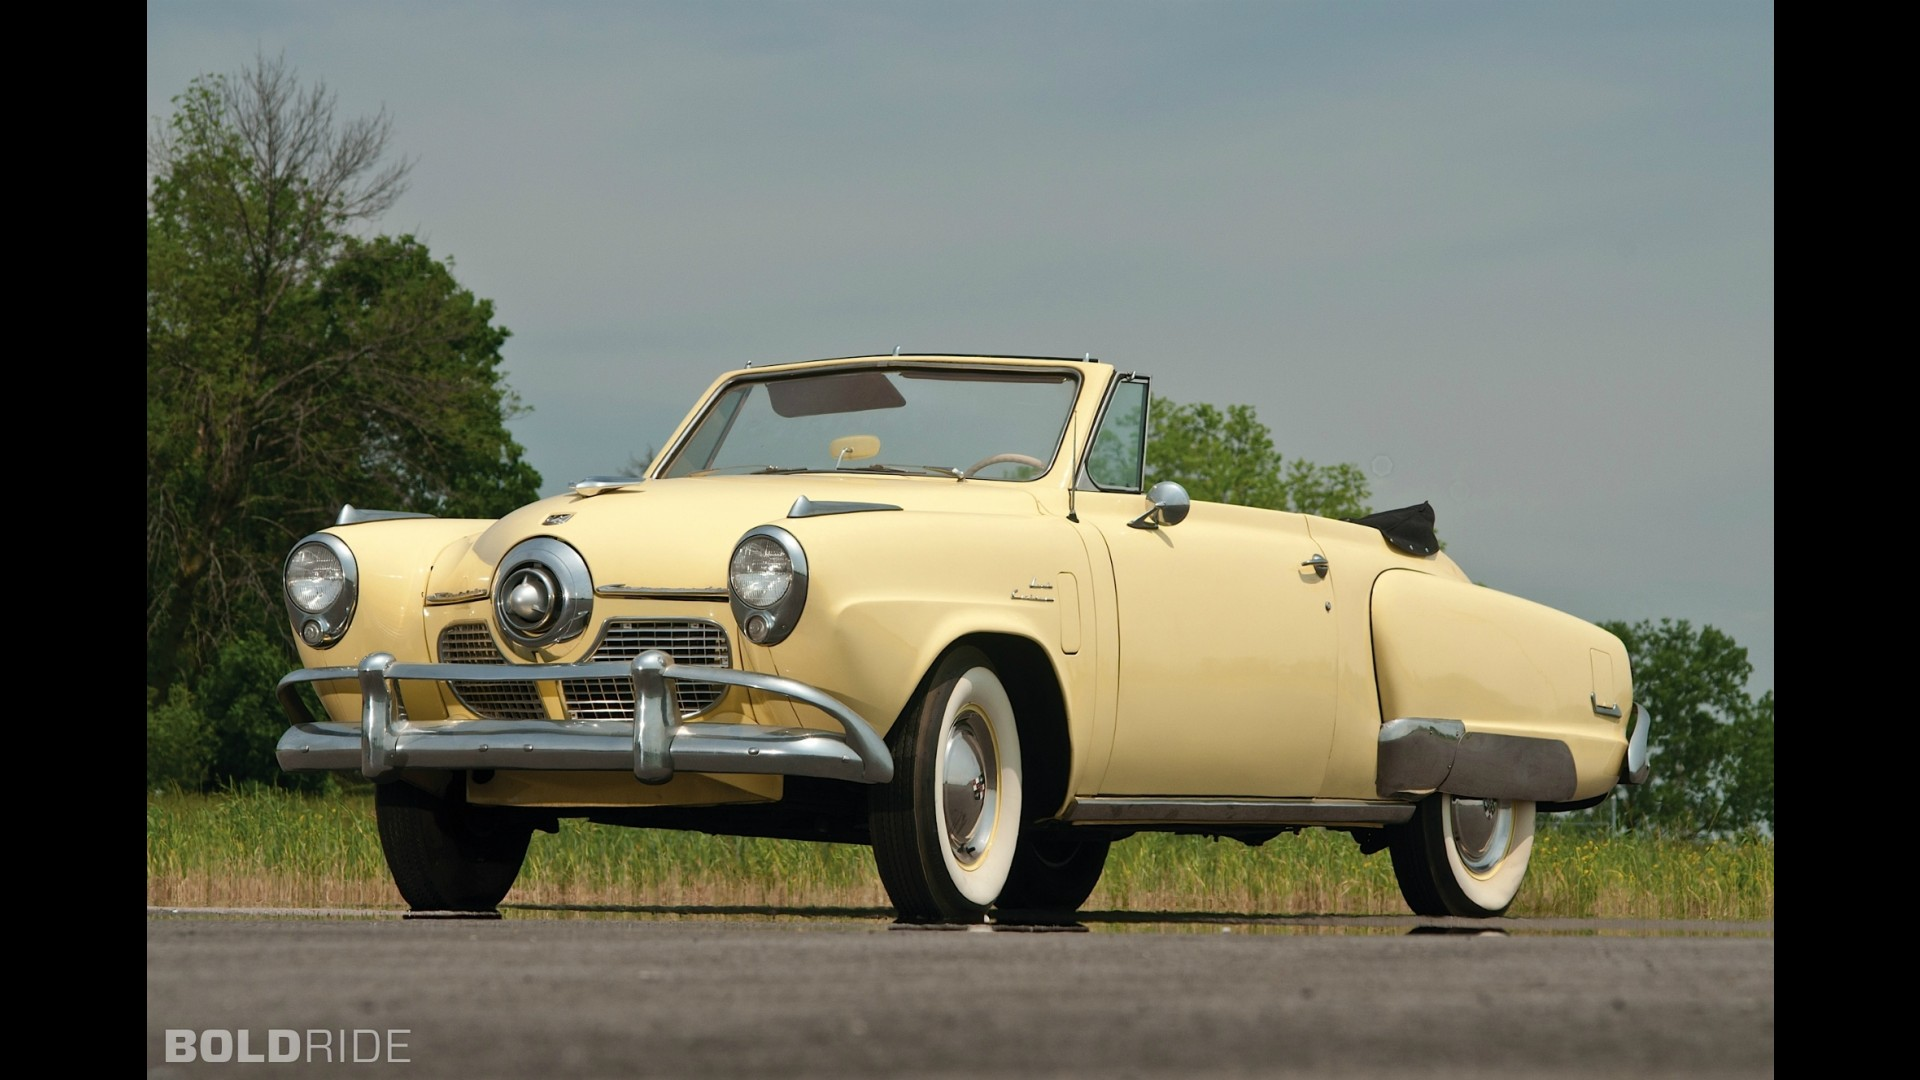 Buick Roadmaster 1939 in addition 1954 CADILLAC ELDORADO CONVERTIBLE 181715 together with Inchydoney also 1950 Studebaker Ch ion Starlight Coupe Can Be Yours For 22500 Photo Gallery 84657 furthermore 1950 FORD F 1 PICKUP 113021. on best model cars 1950